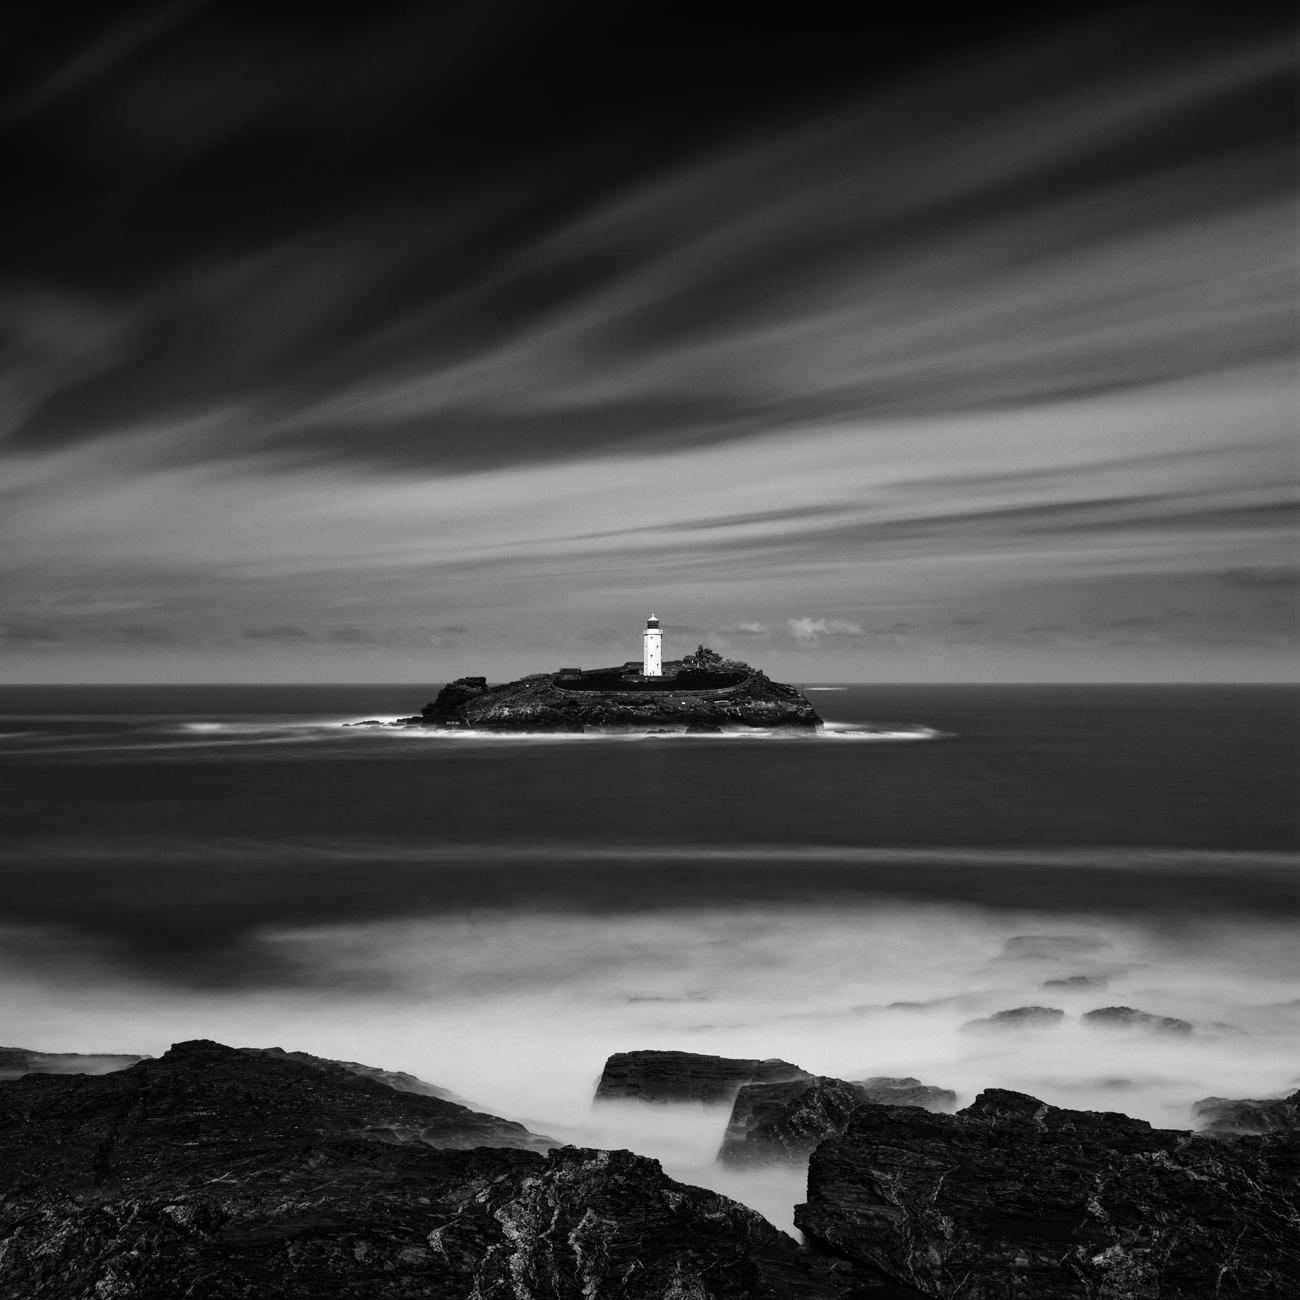 lighthouse_bw.png